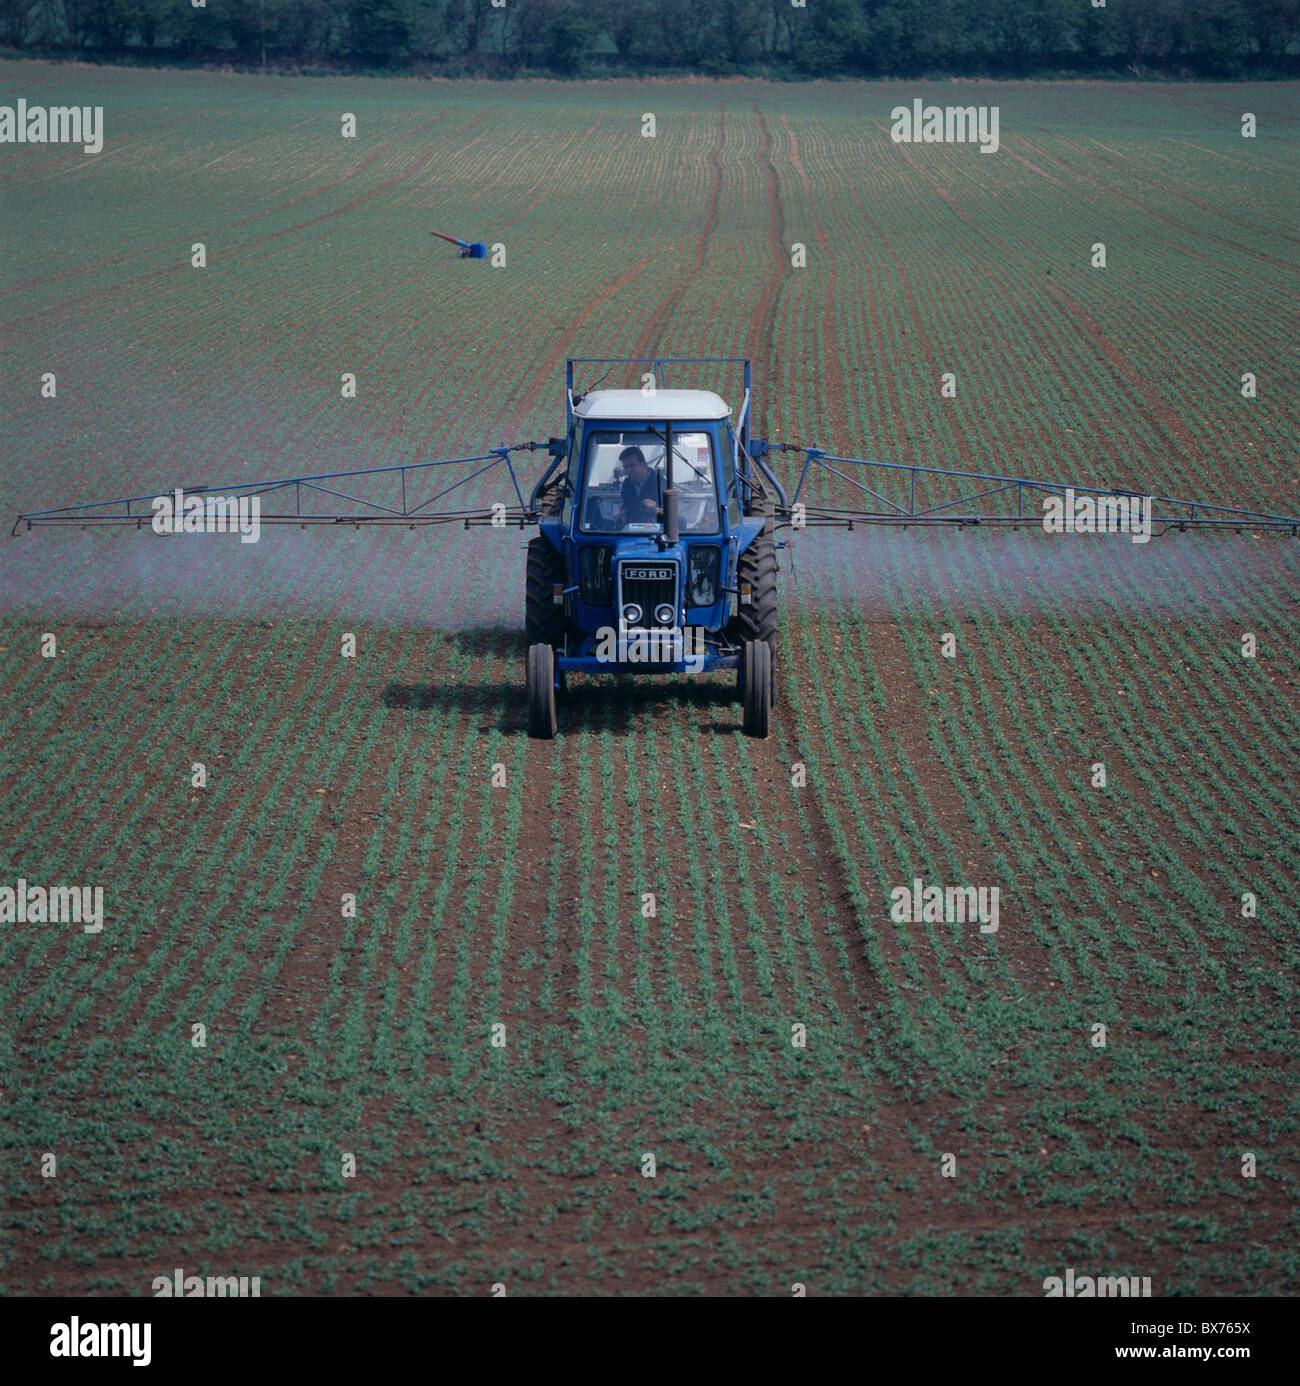 Ford tractor with mounted boom sprayer spraying a seedling pea crop - Stock Image